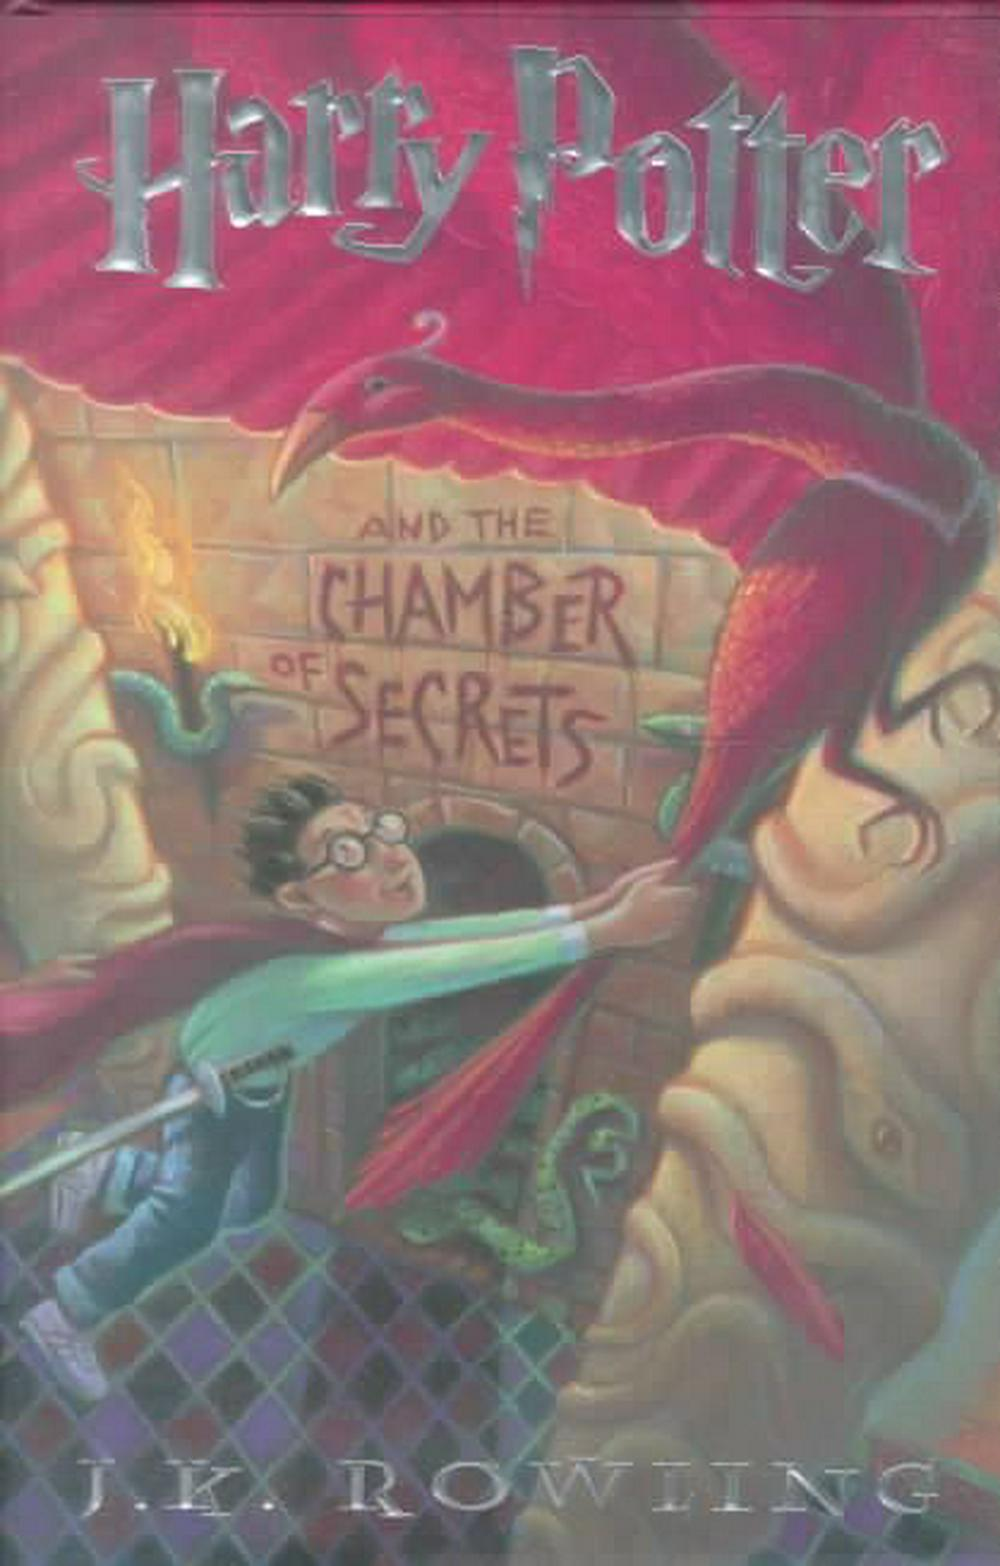 Harry Potter and the Chamber of Secrets by J. K. Rowling, ISBN: 9780786222735